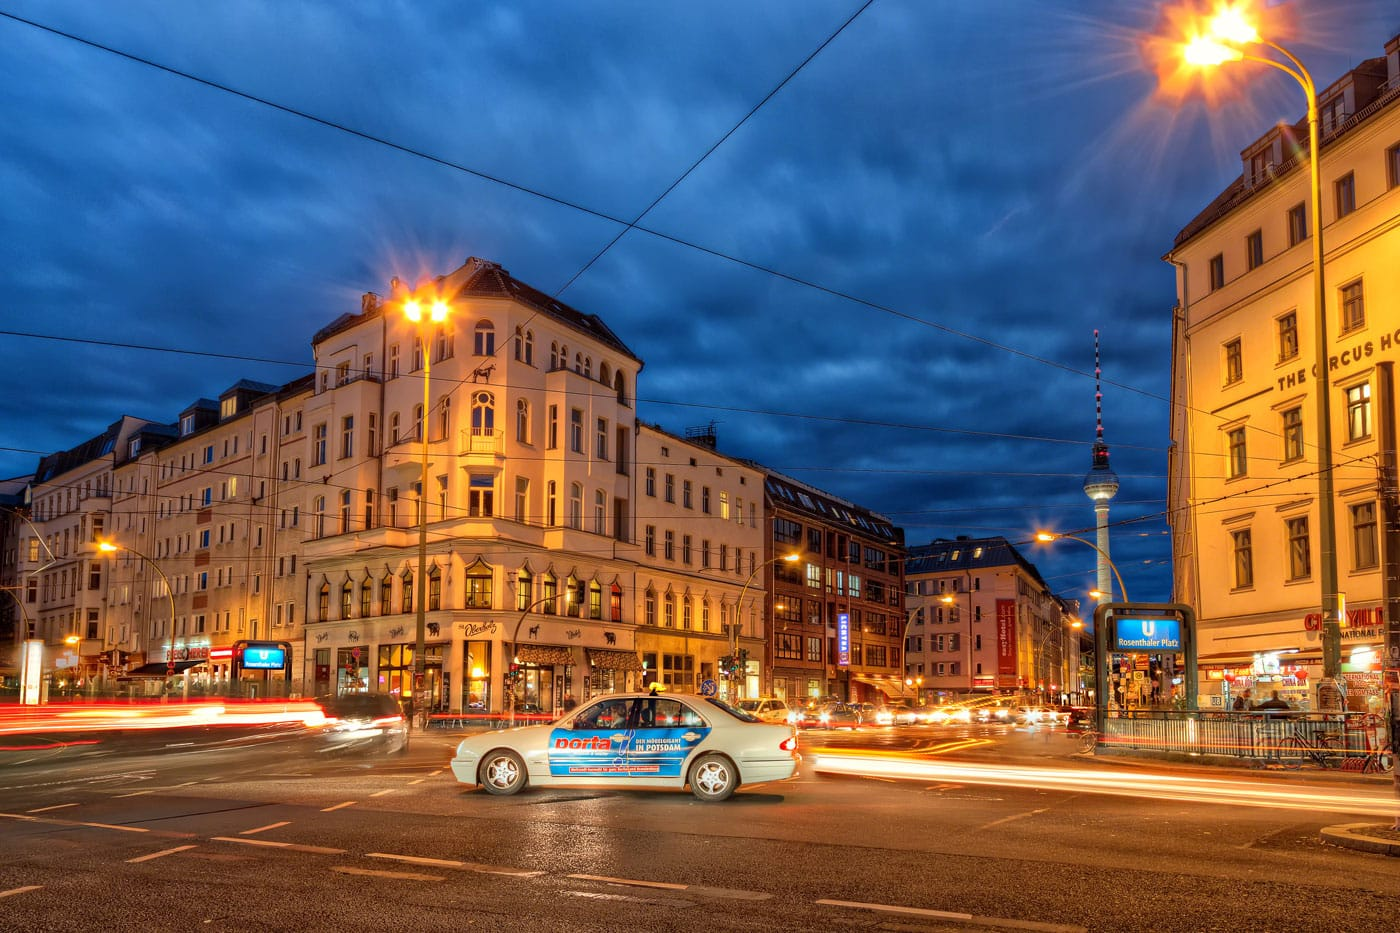 Rosenthaler Platz in Berlin with a taxi in the middle and the TV Tower in the background.